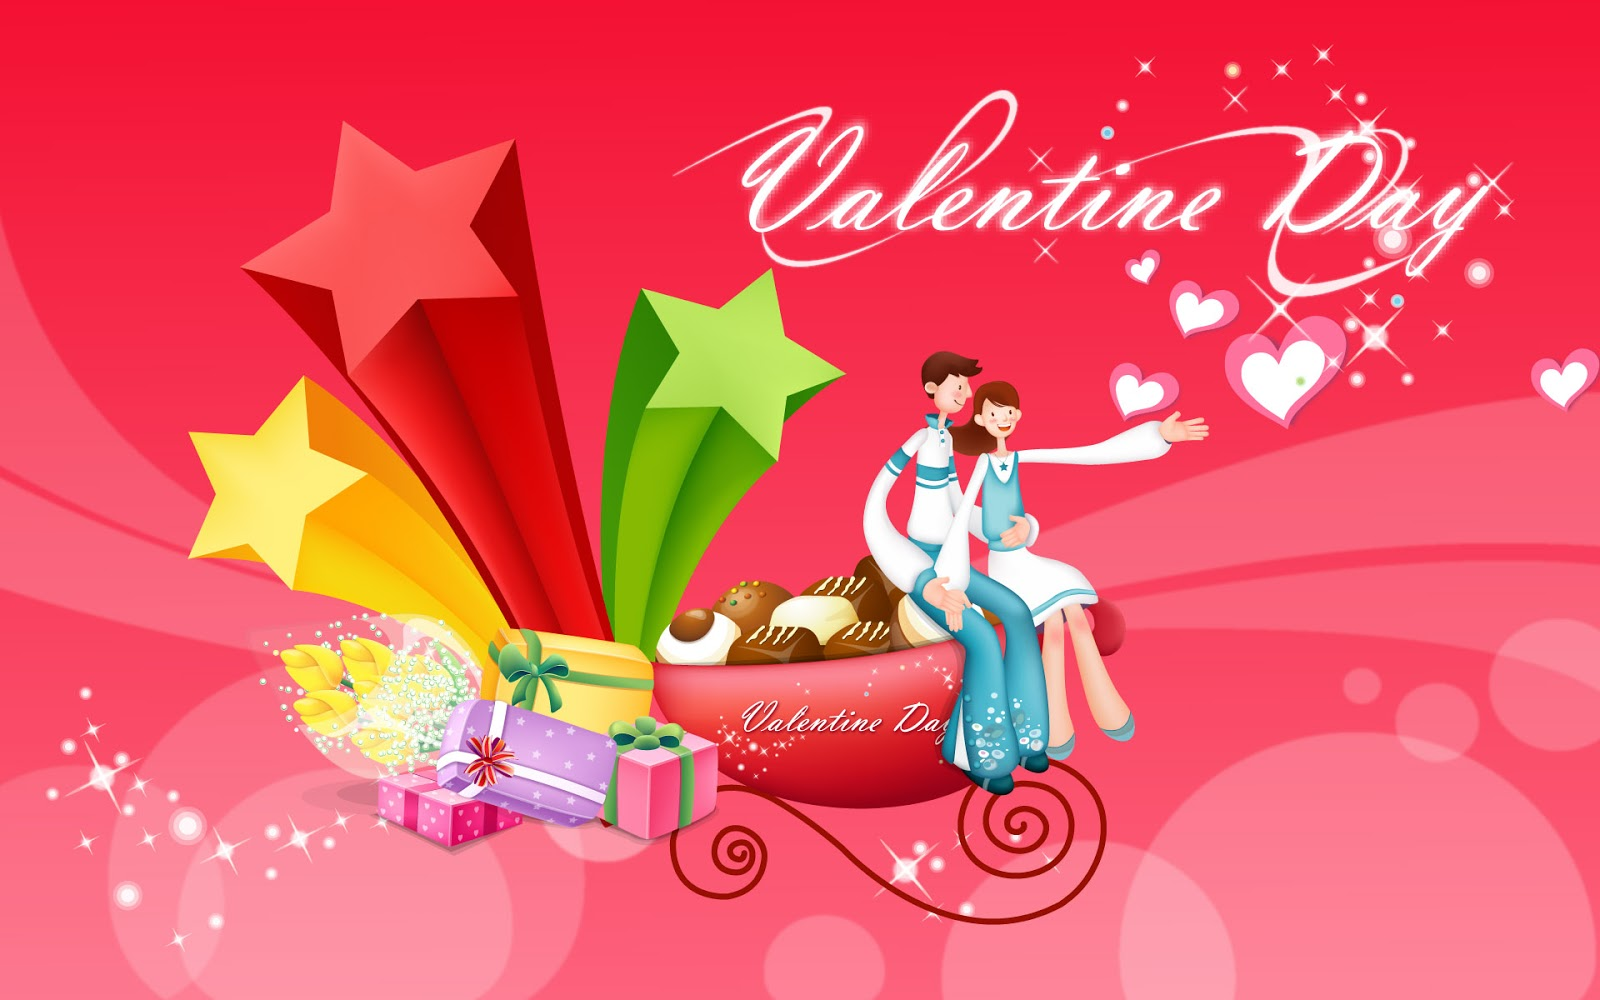 best happy valentines day couple latest 4k wallpapers hd